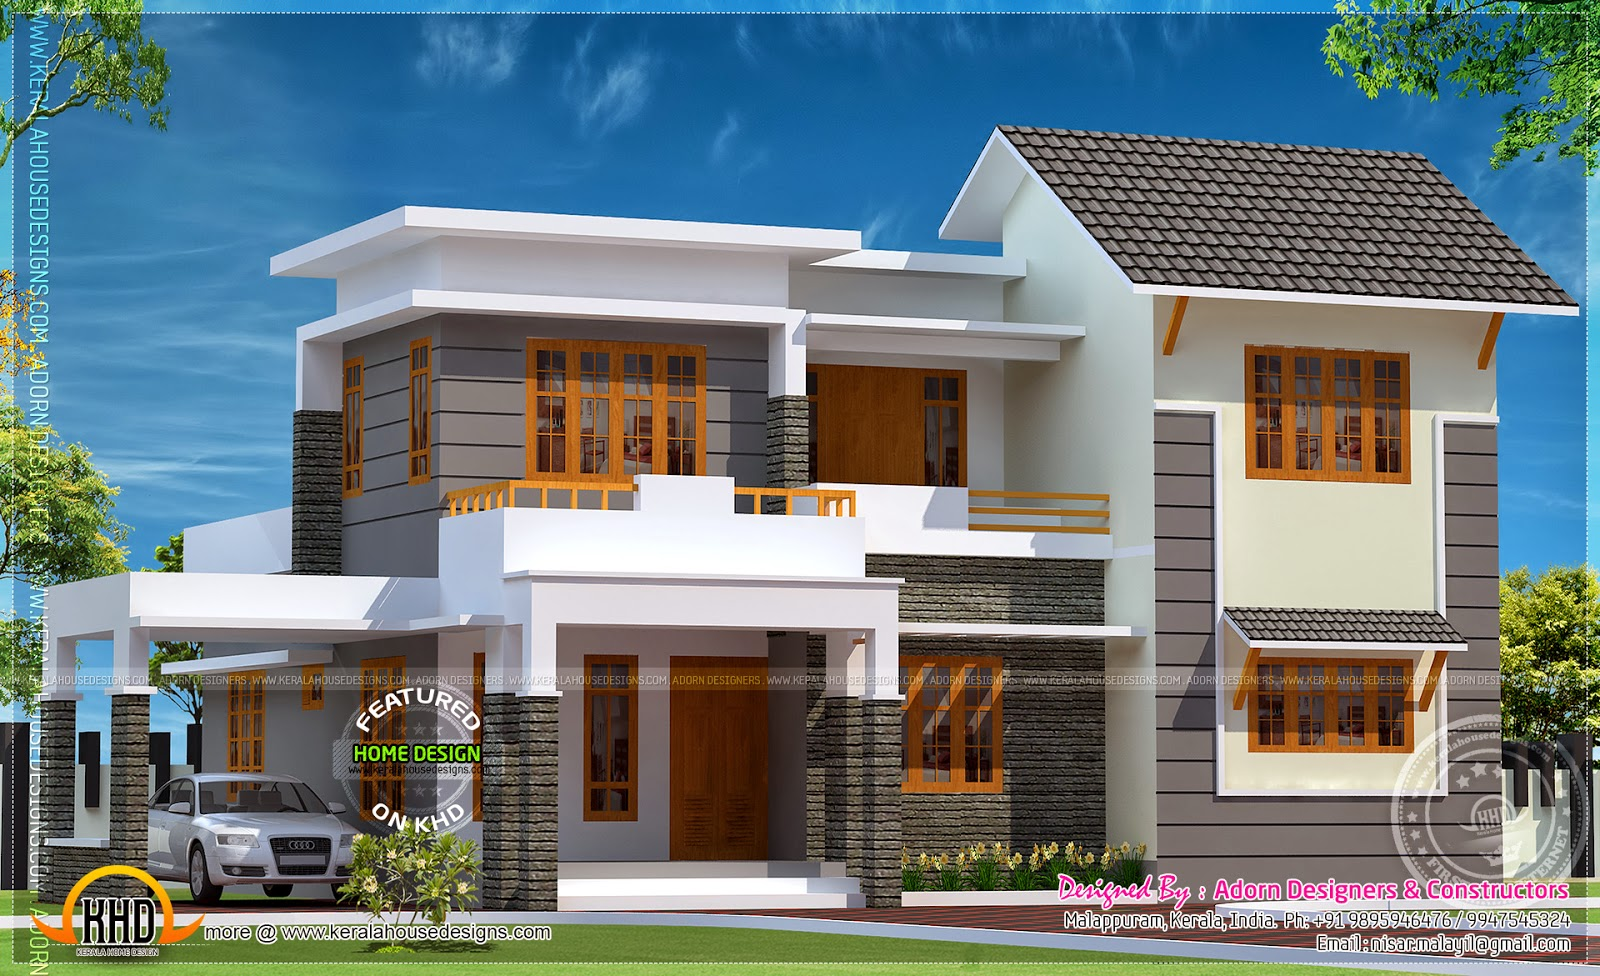 Elegant home in 1850 square feet kerala home design and floor plans Elegant home design ideas